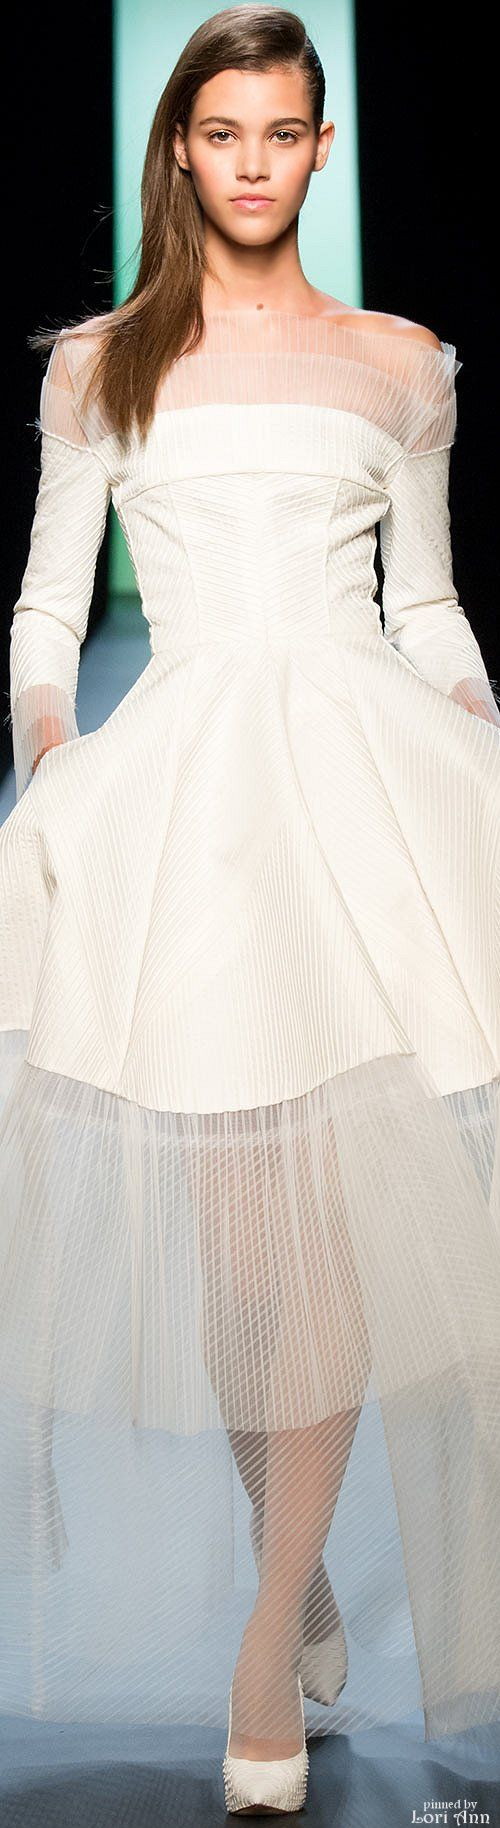 Jean Paul Gaultier Couture Spring 2015